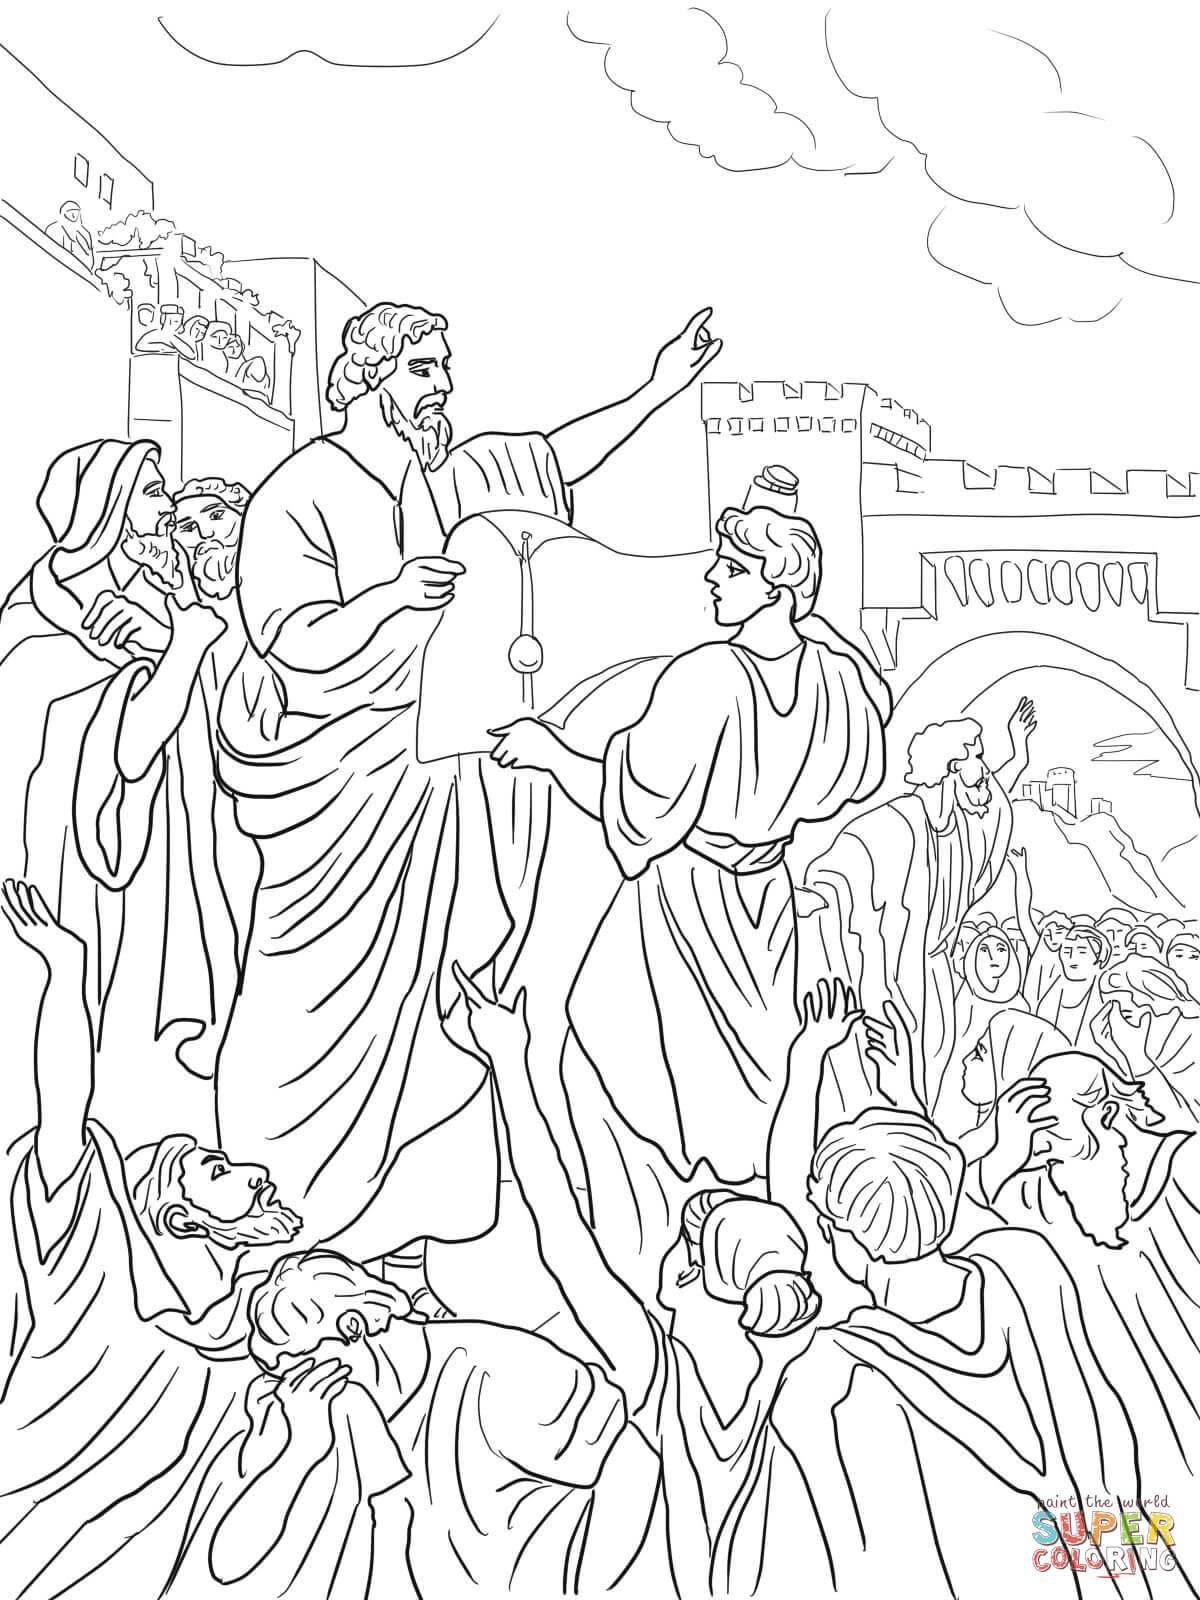 nehemiah coloring page image result for ezra and nehemiah kids craft toddler coloring page nehemiah